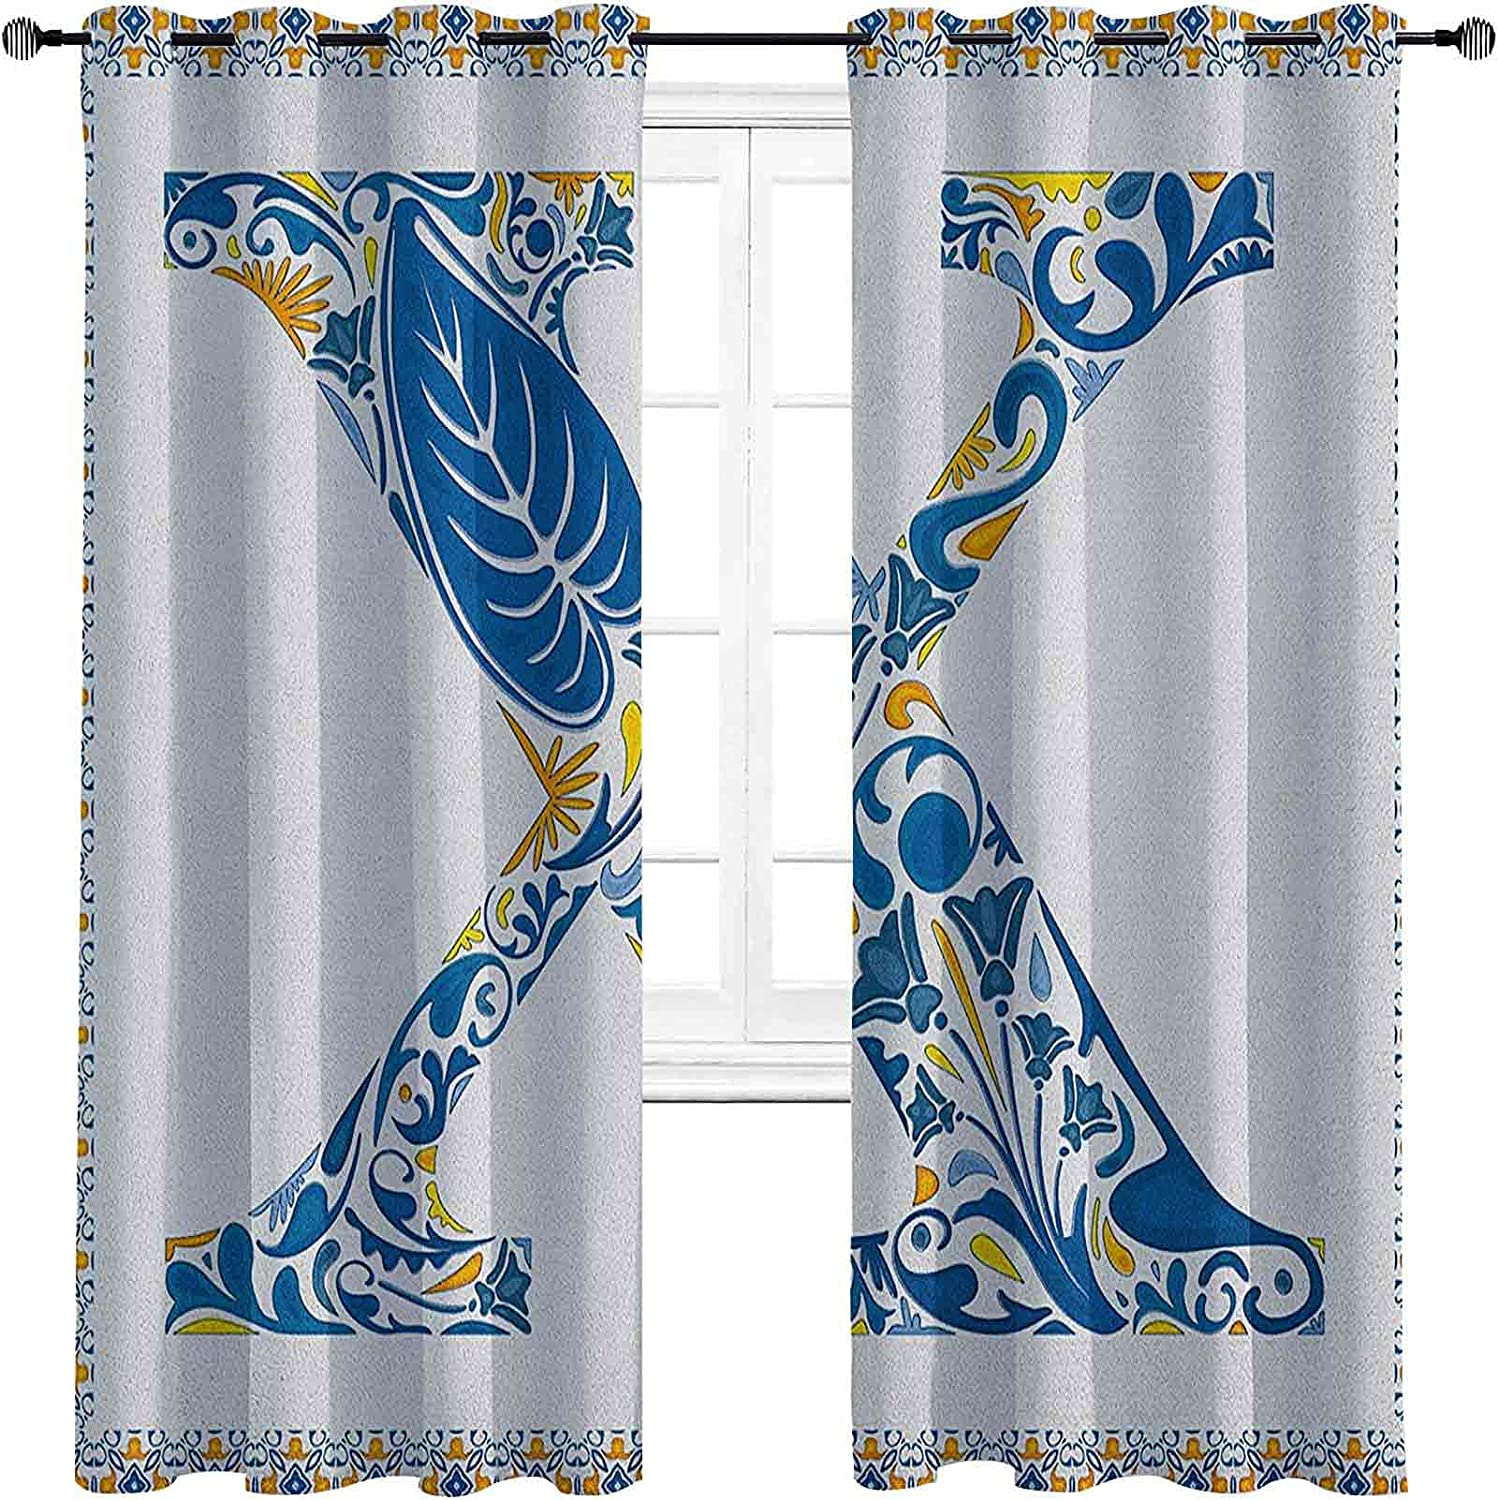 Letter X Shading Insulated Nature Curtain Inspired New Luxury product type Arrangement